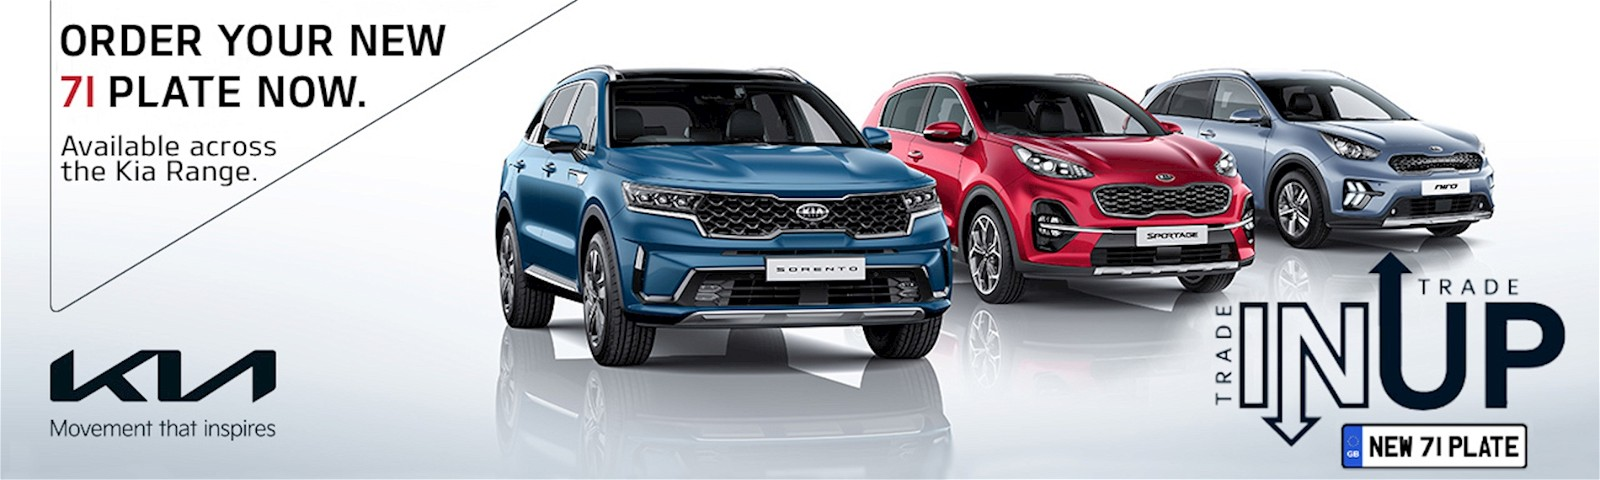 order your 71 plate Kia